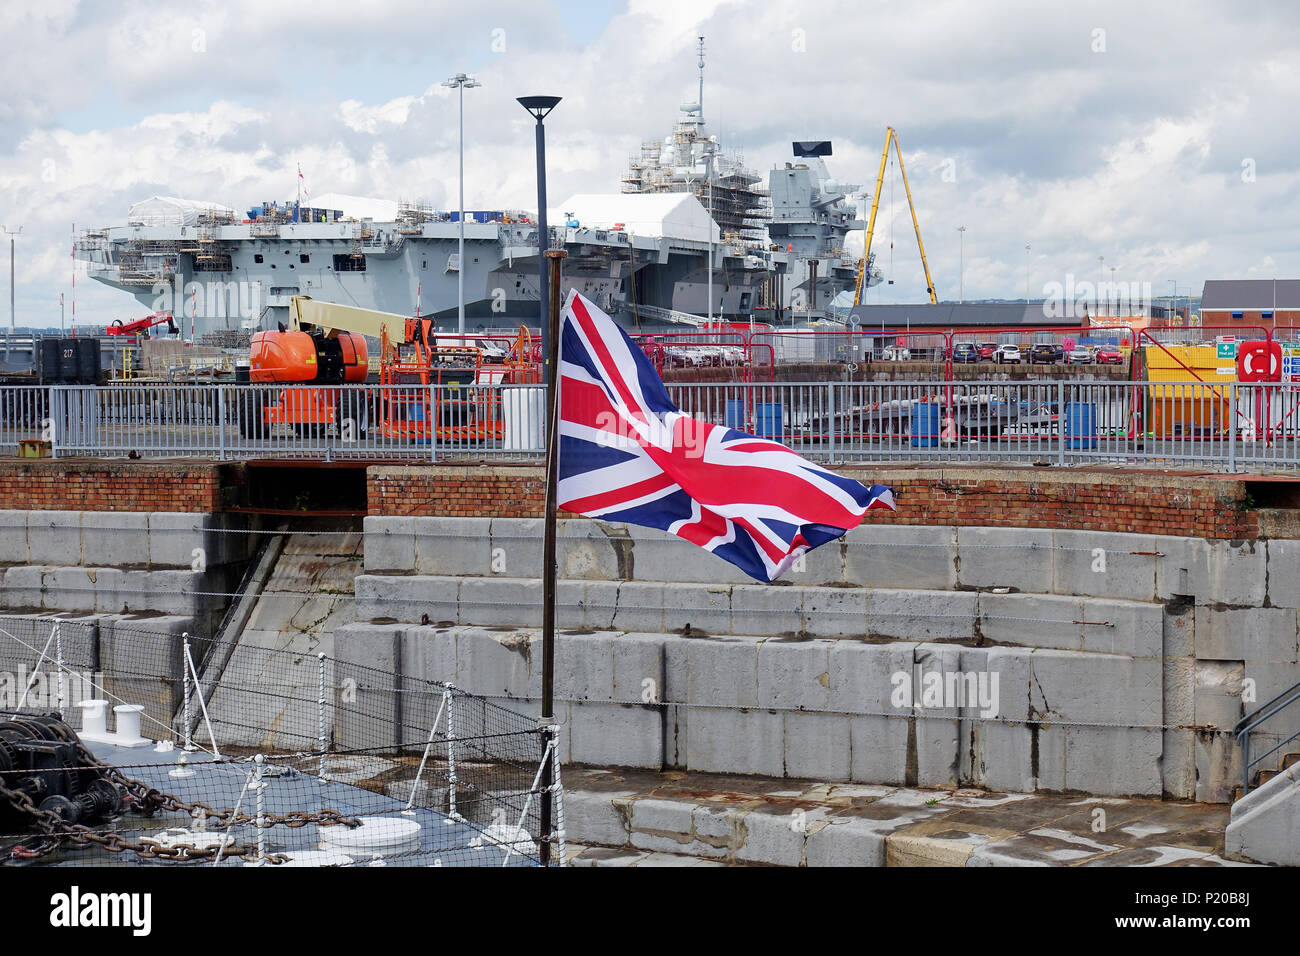 Union Jack on the Jackstaff of museum ship HMS M33 with newmaircraft carrier HMS Queen Elizabeth undergoing modifications at Portsmouth Dockyard - Stock Image